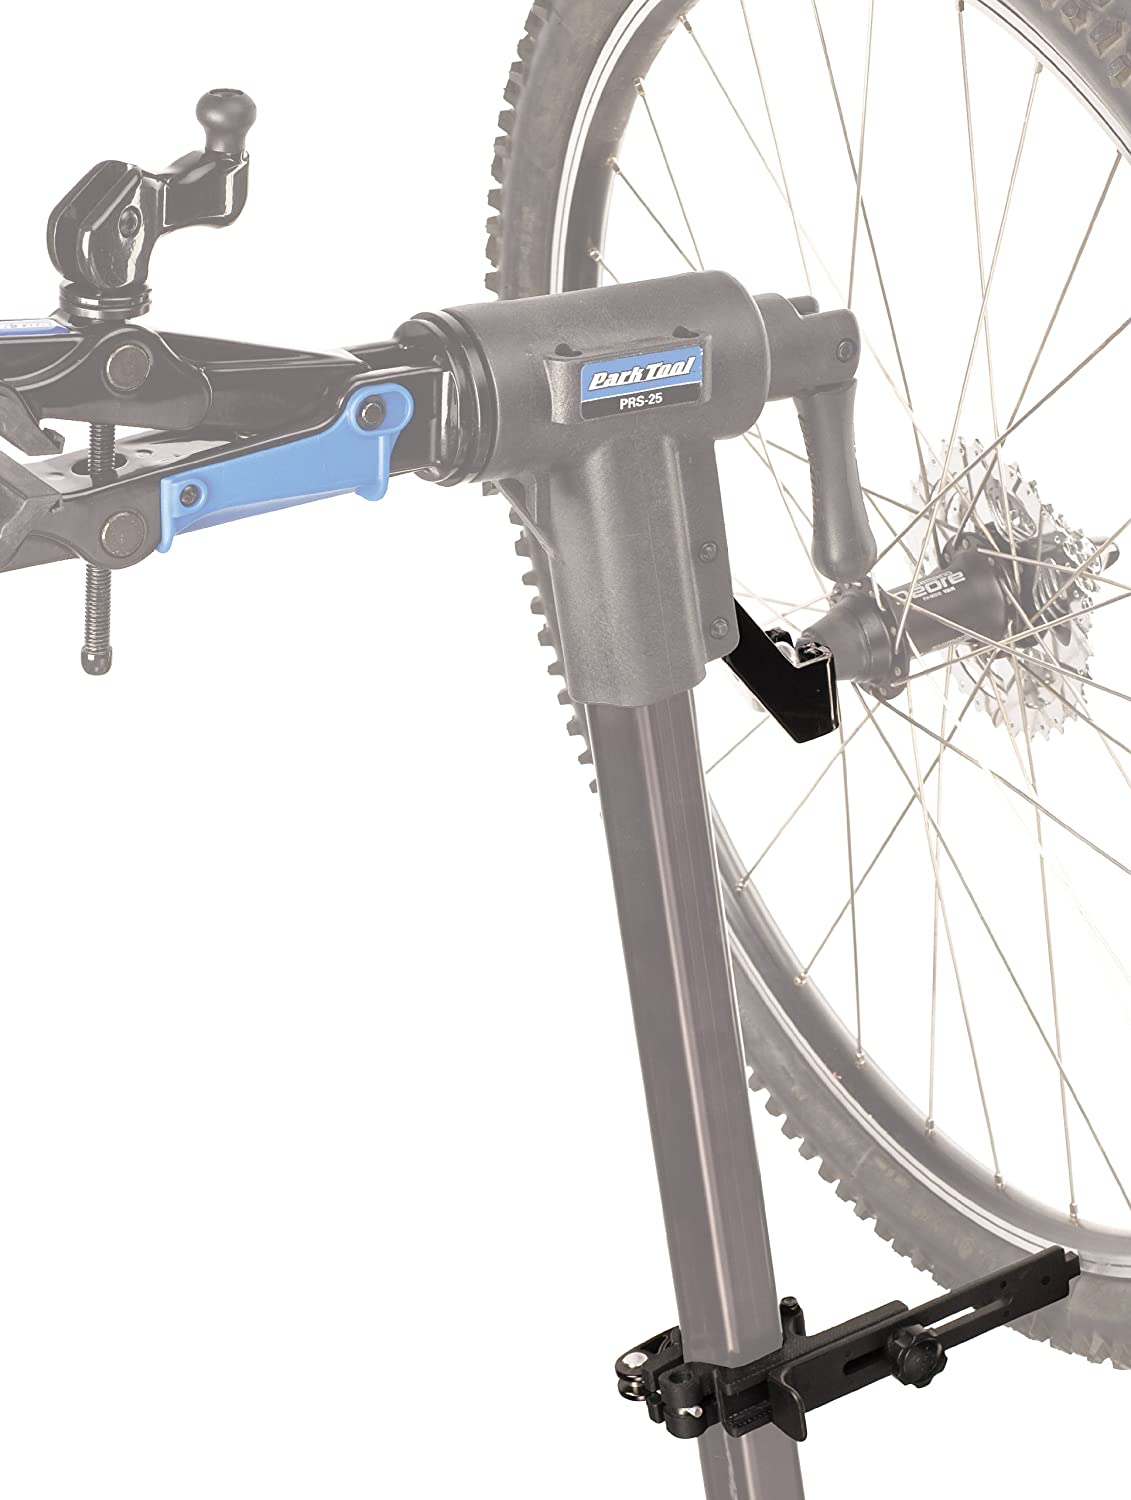 Park Tool Repair Mount Wheel Truing Stand Bike